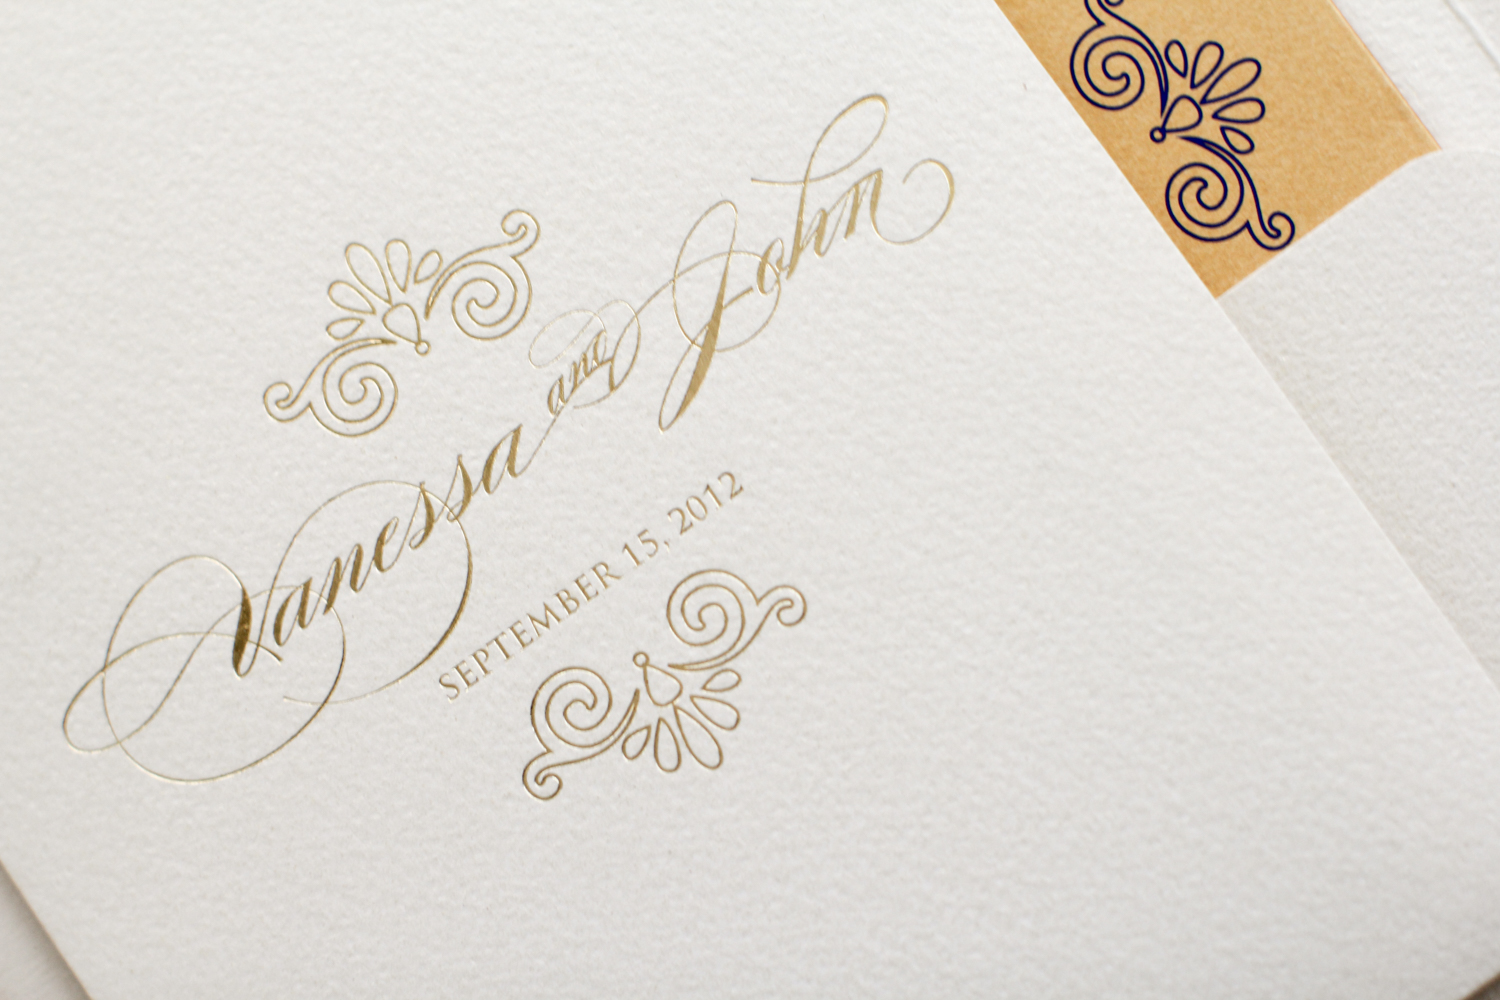 gold foil pocket invitation with seashell inspired motif | AZURE COUTURE